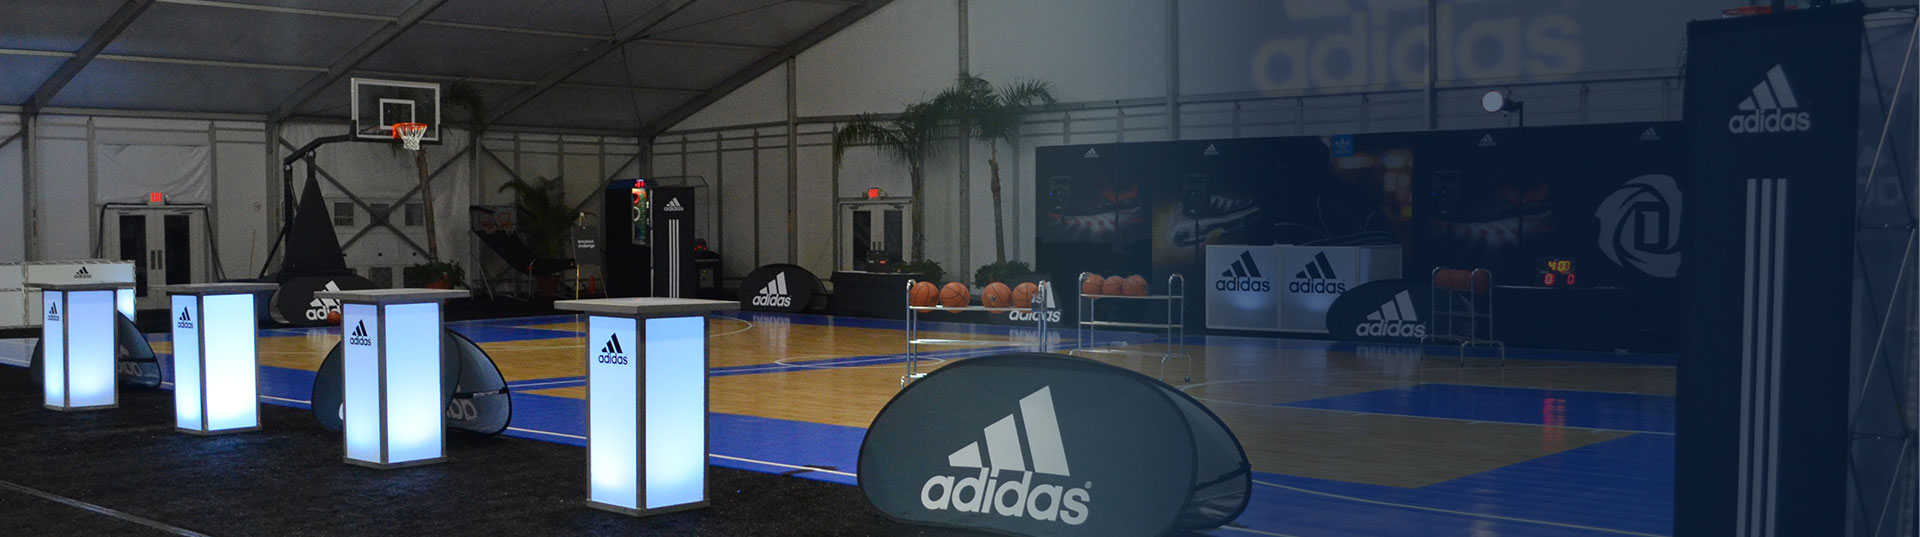 Adidas indoor basketball cour engagement services